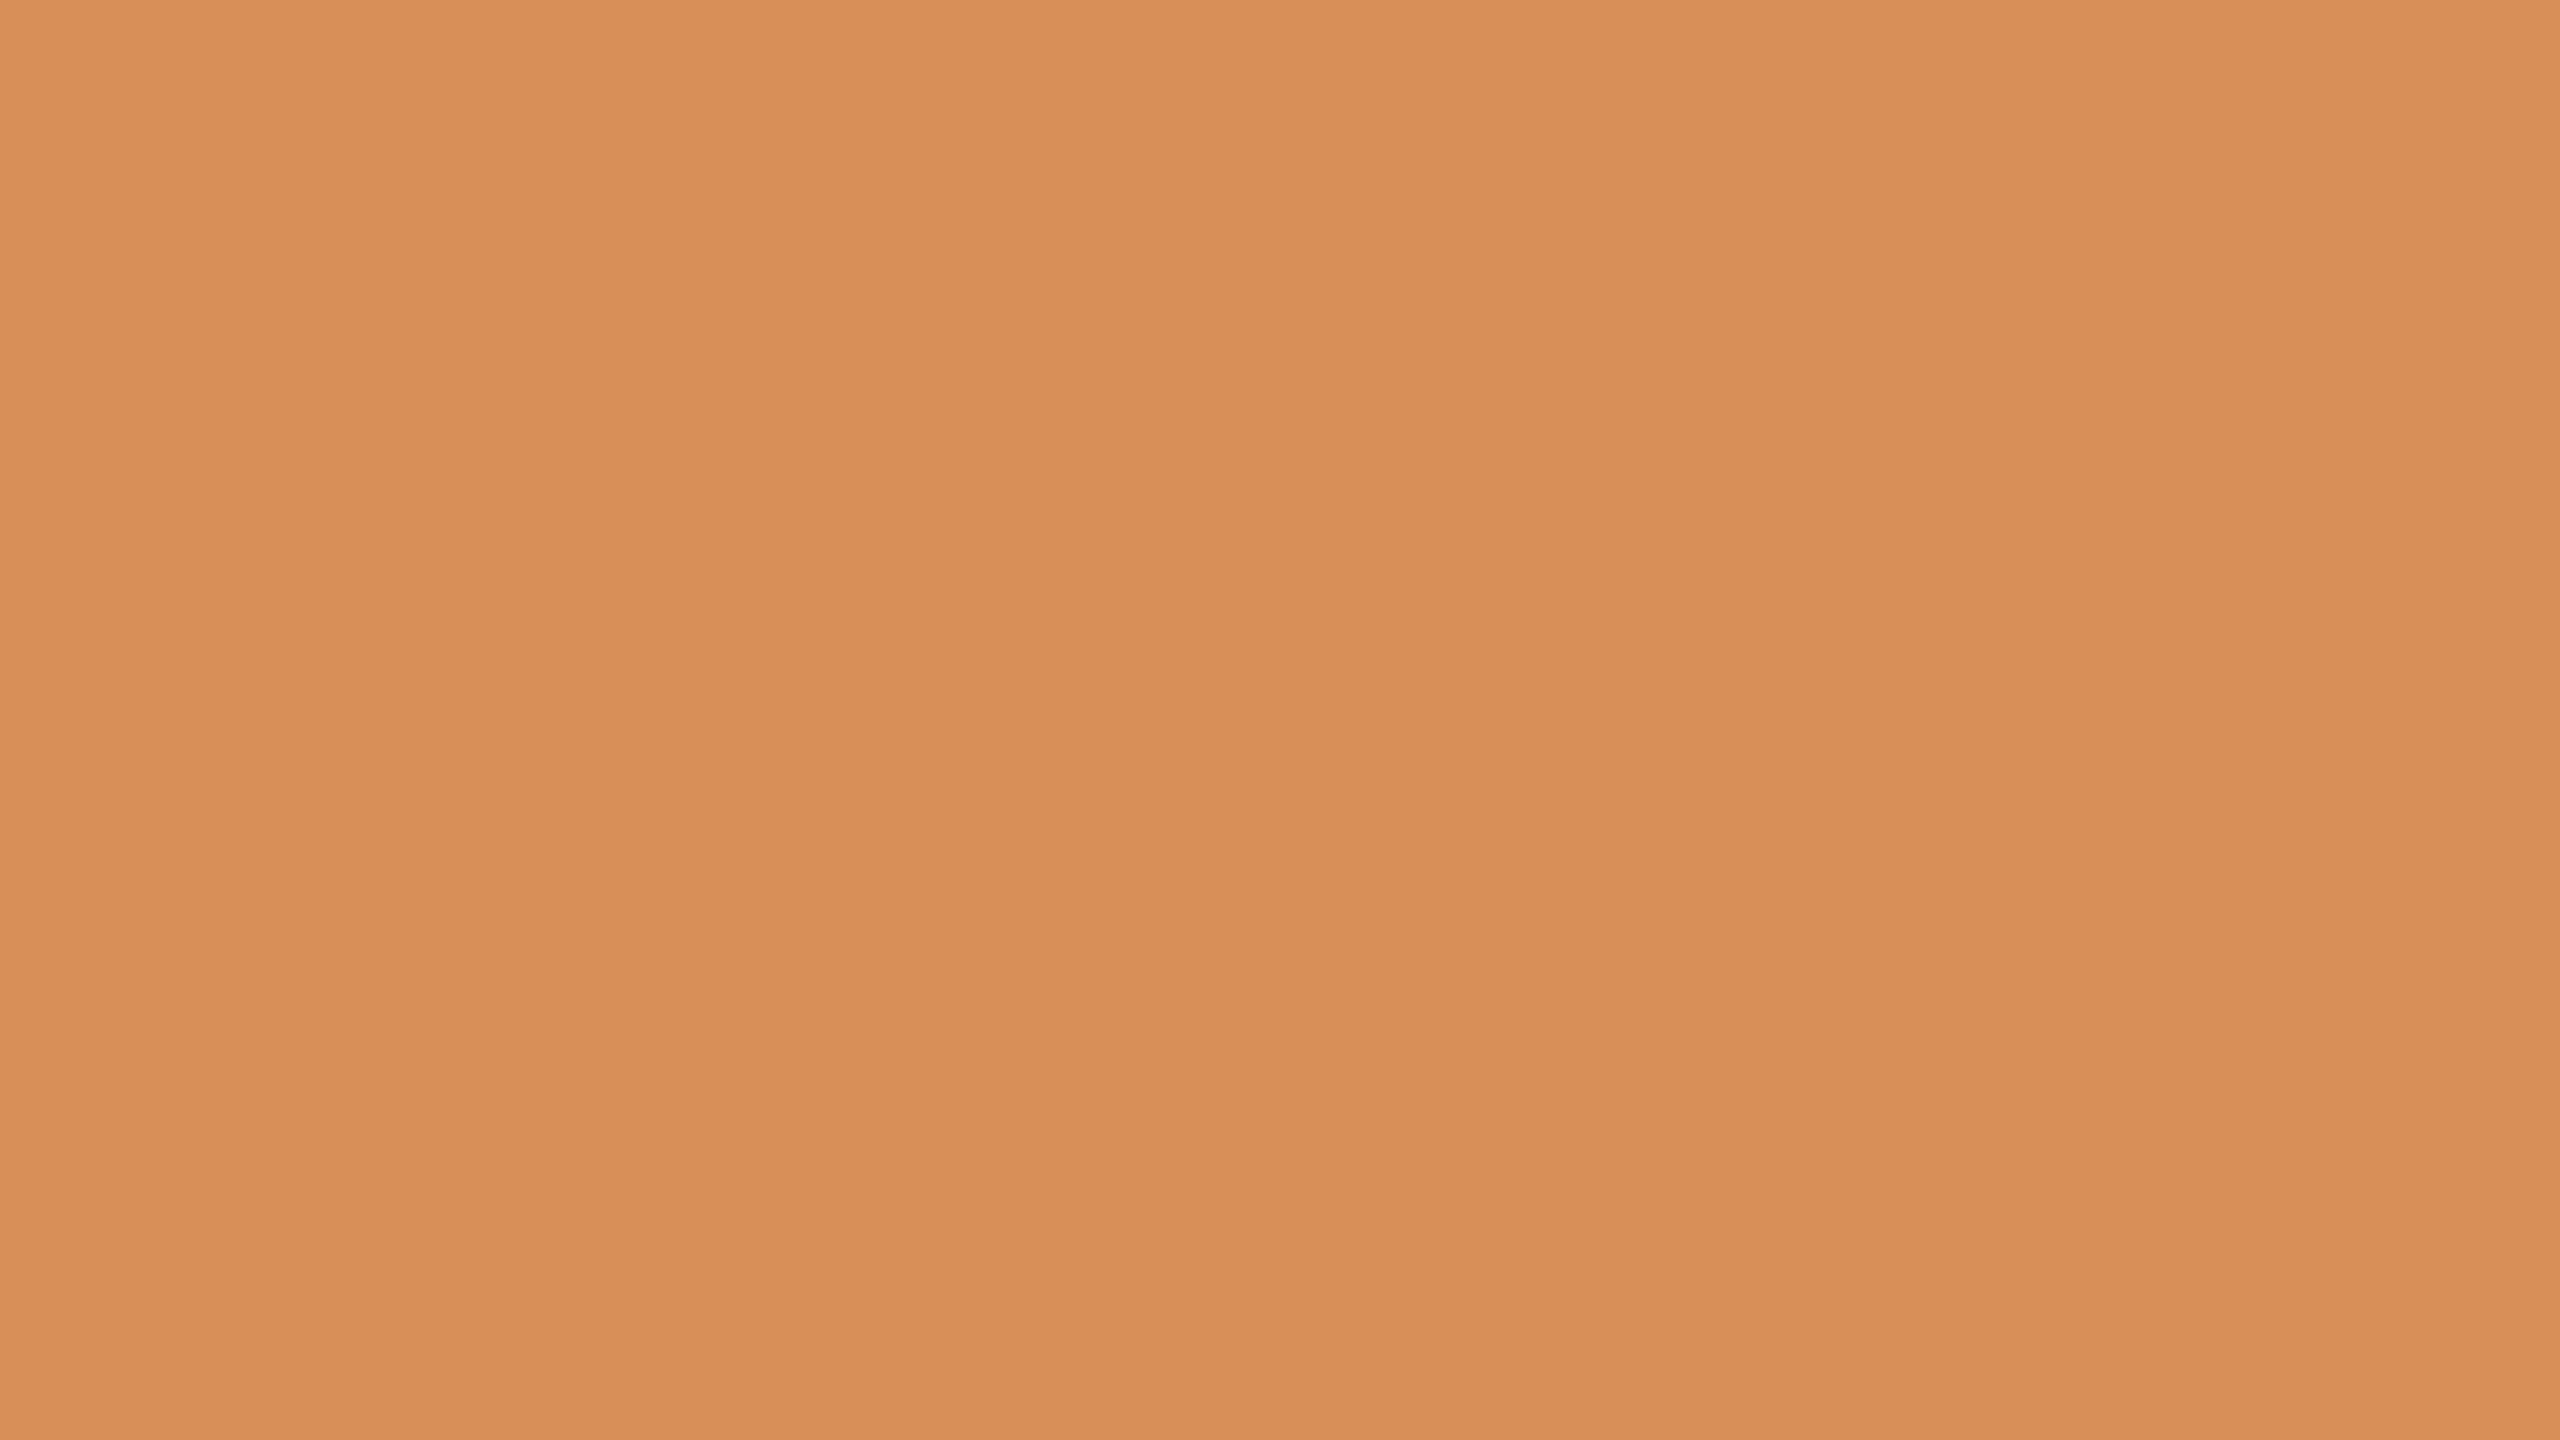 2560x1440 Persian Orange Solid Color Background